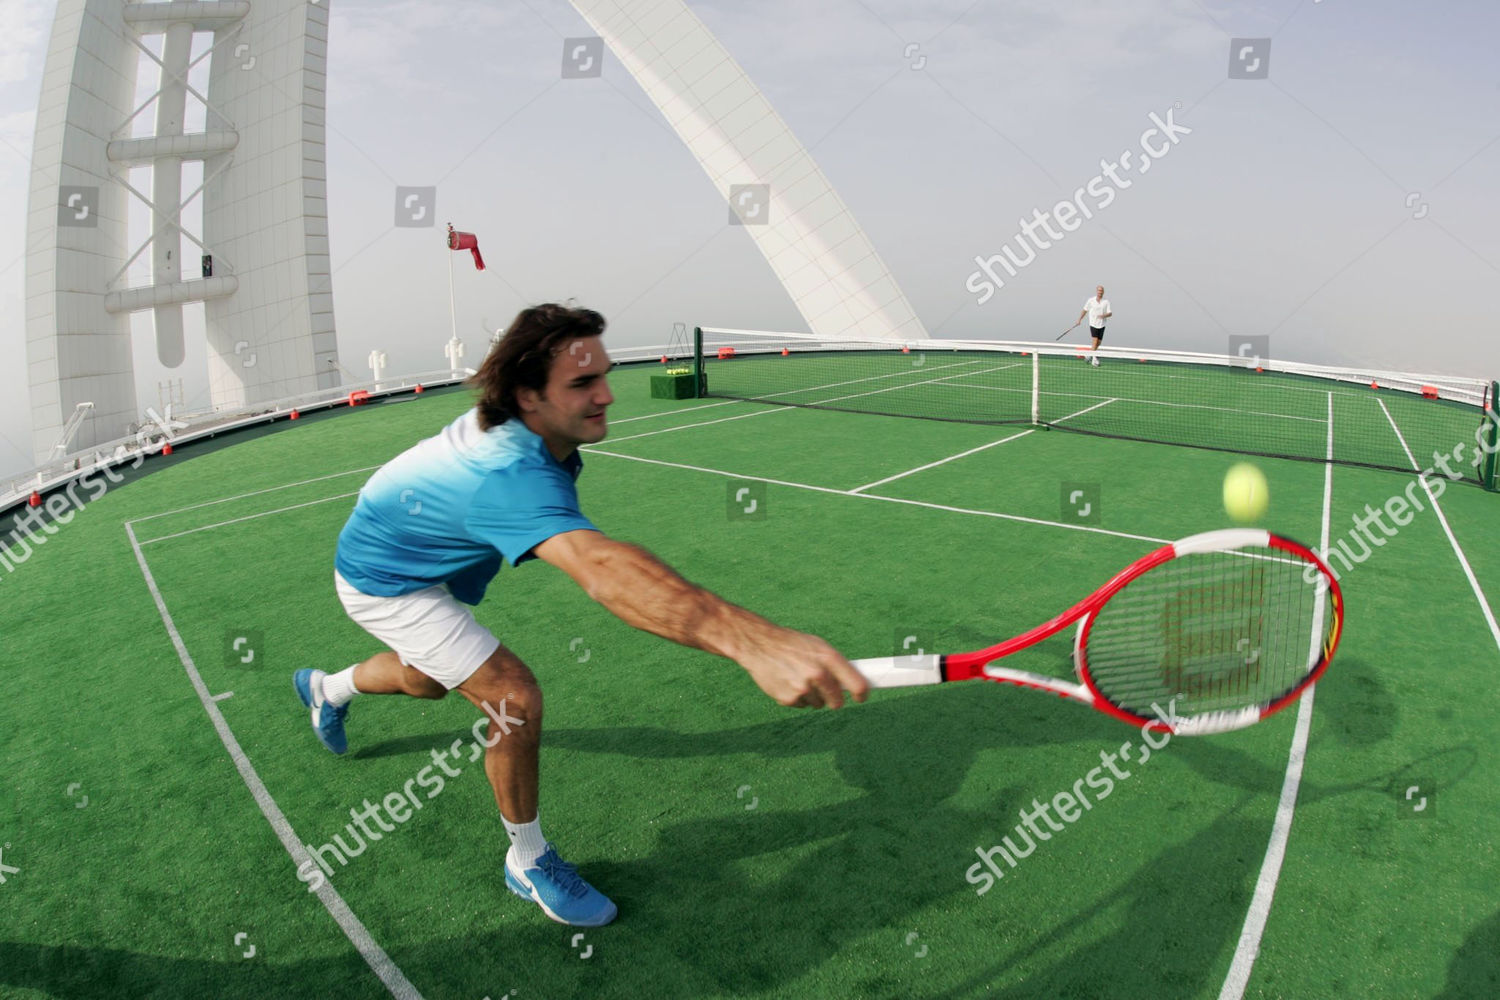 Roger Federer Court Laid Overtop Helicopter Pad Stock Photo 514135e